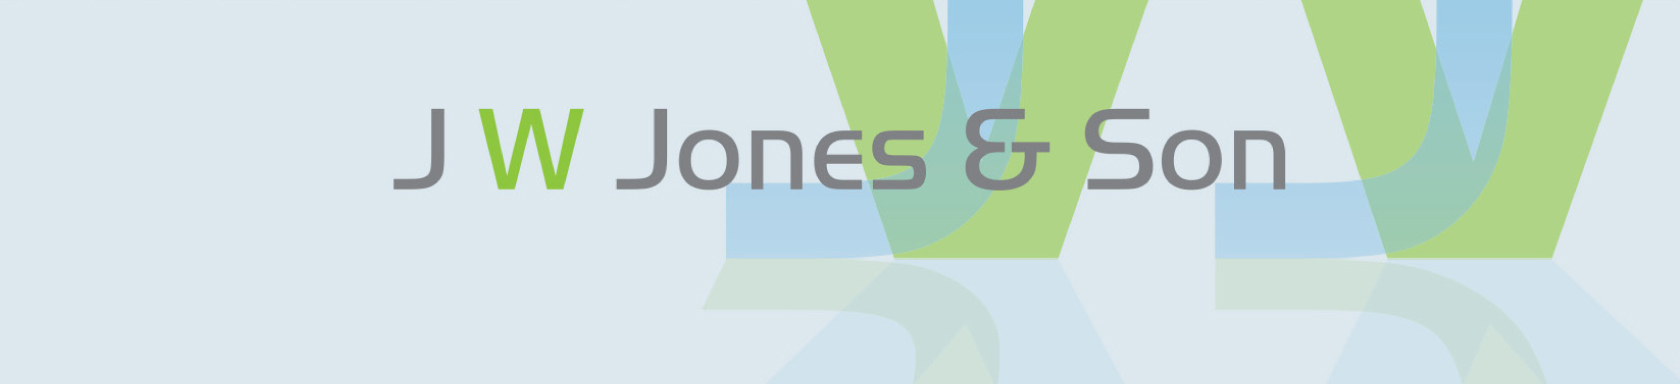 JW Jones & Son North Wales